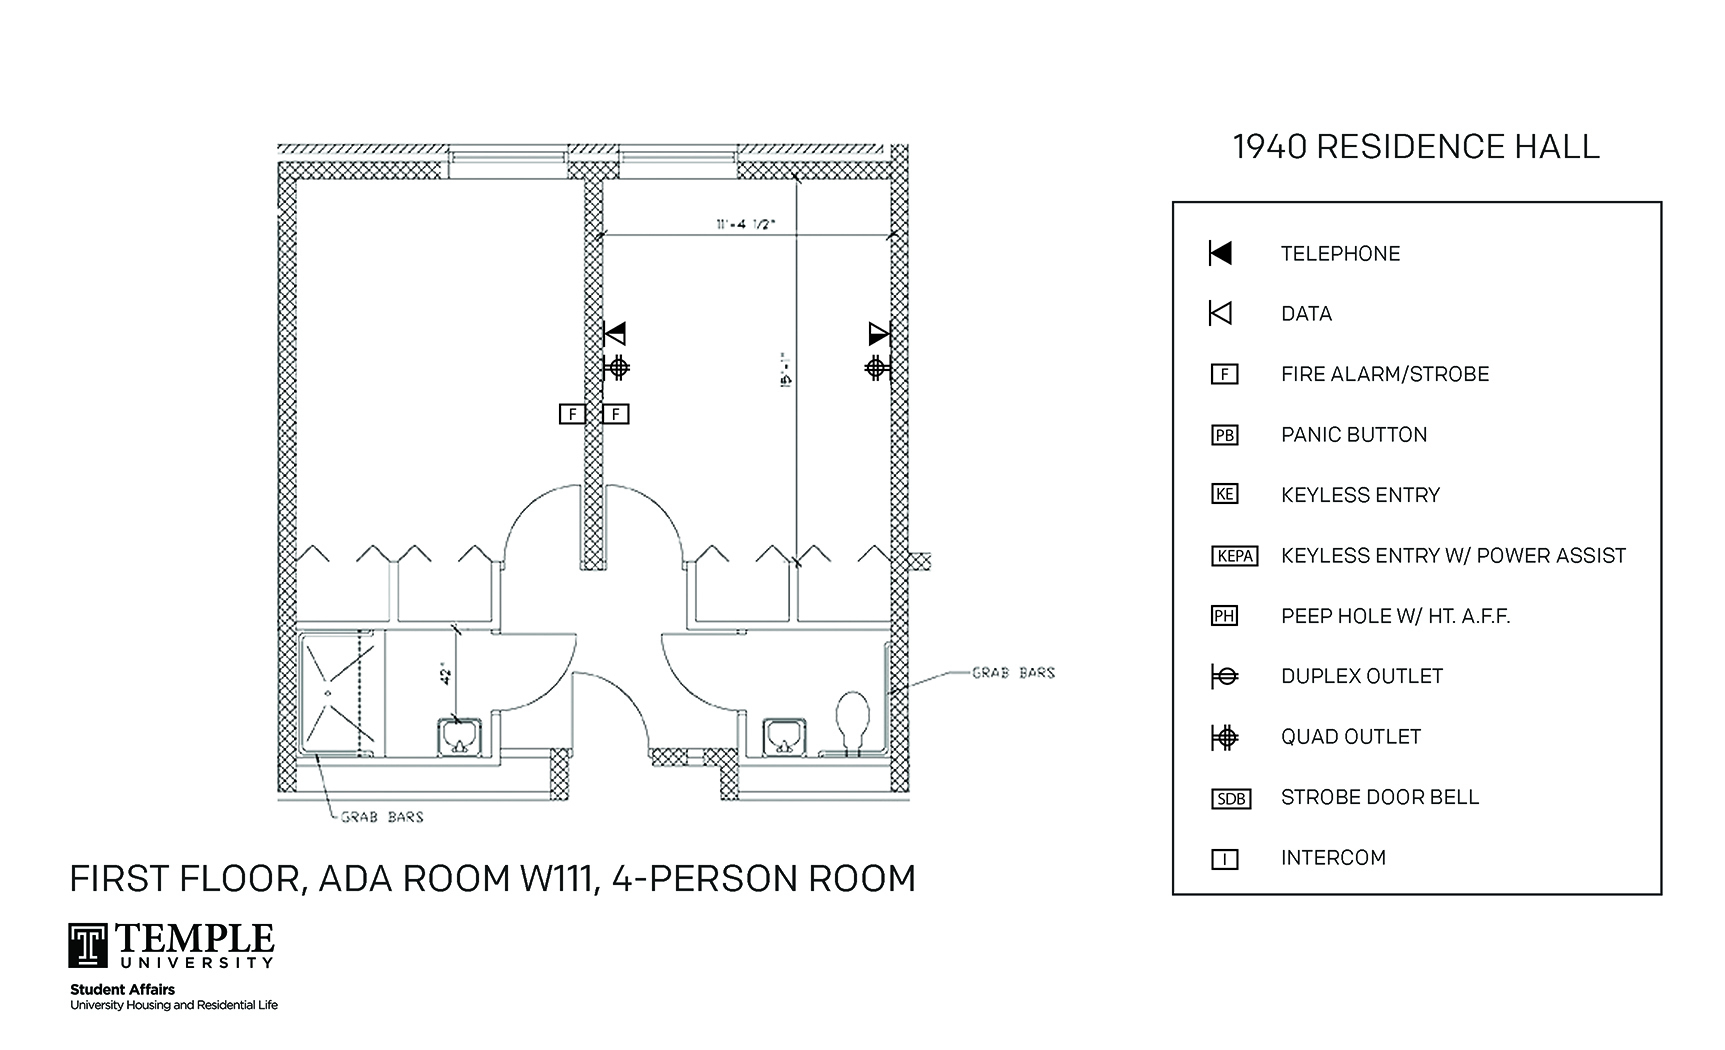 Accessible Room Diagrams: 4 person, 2 bedroom Suite - W111